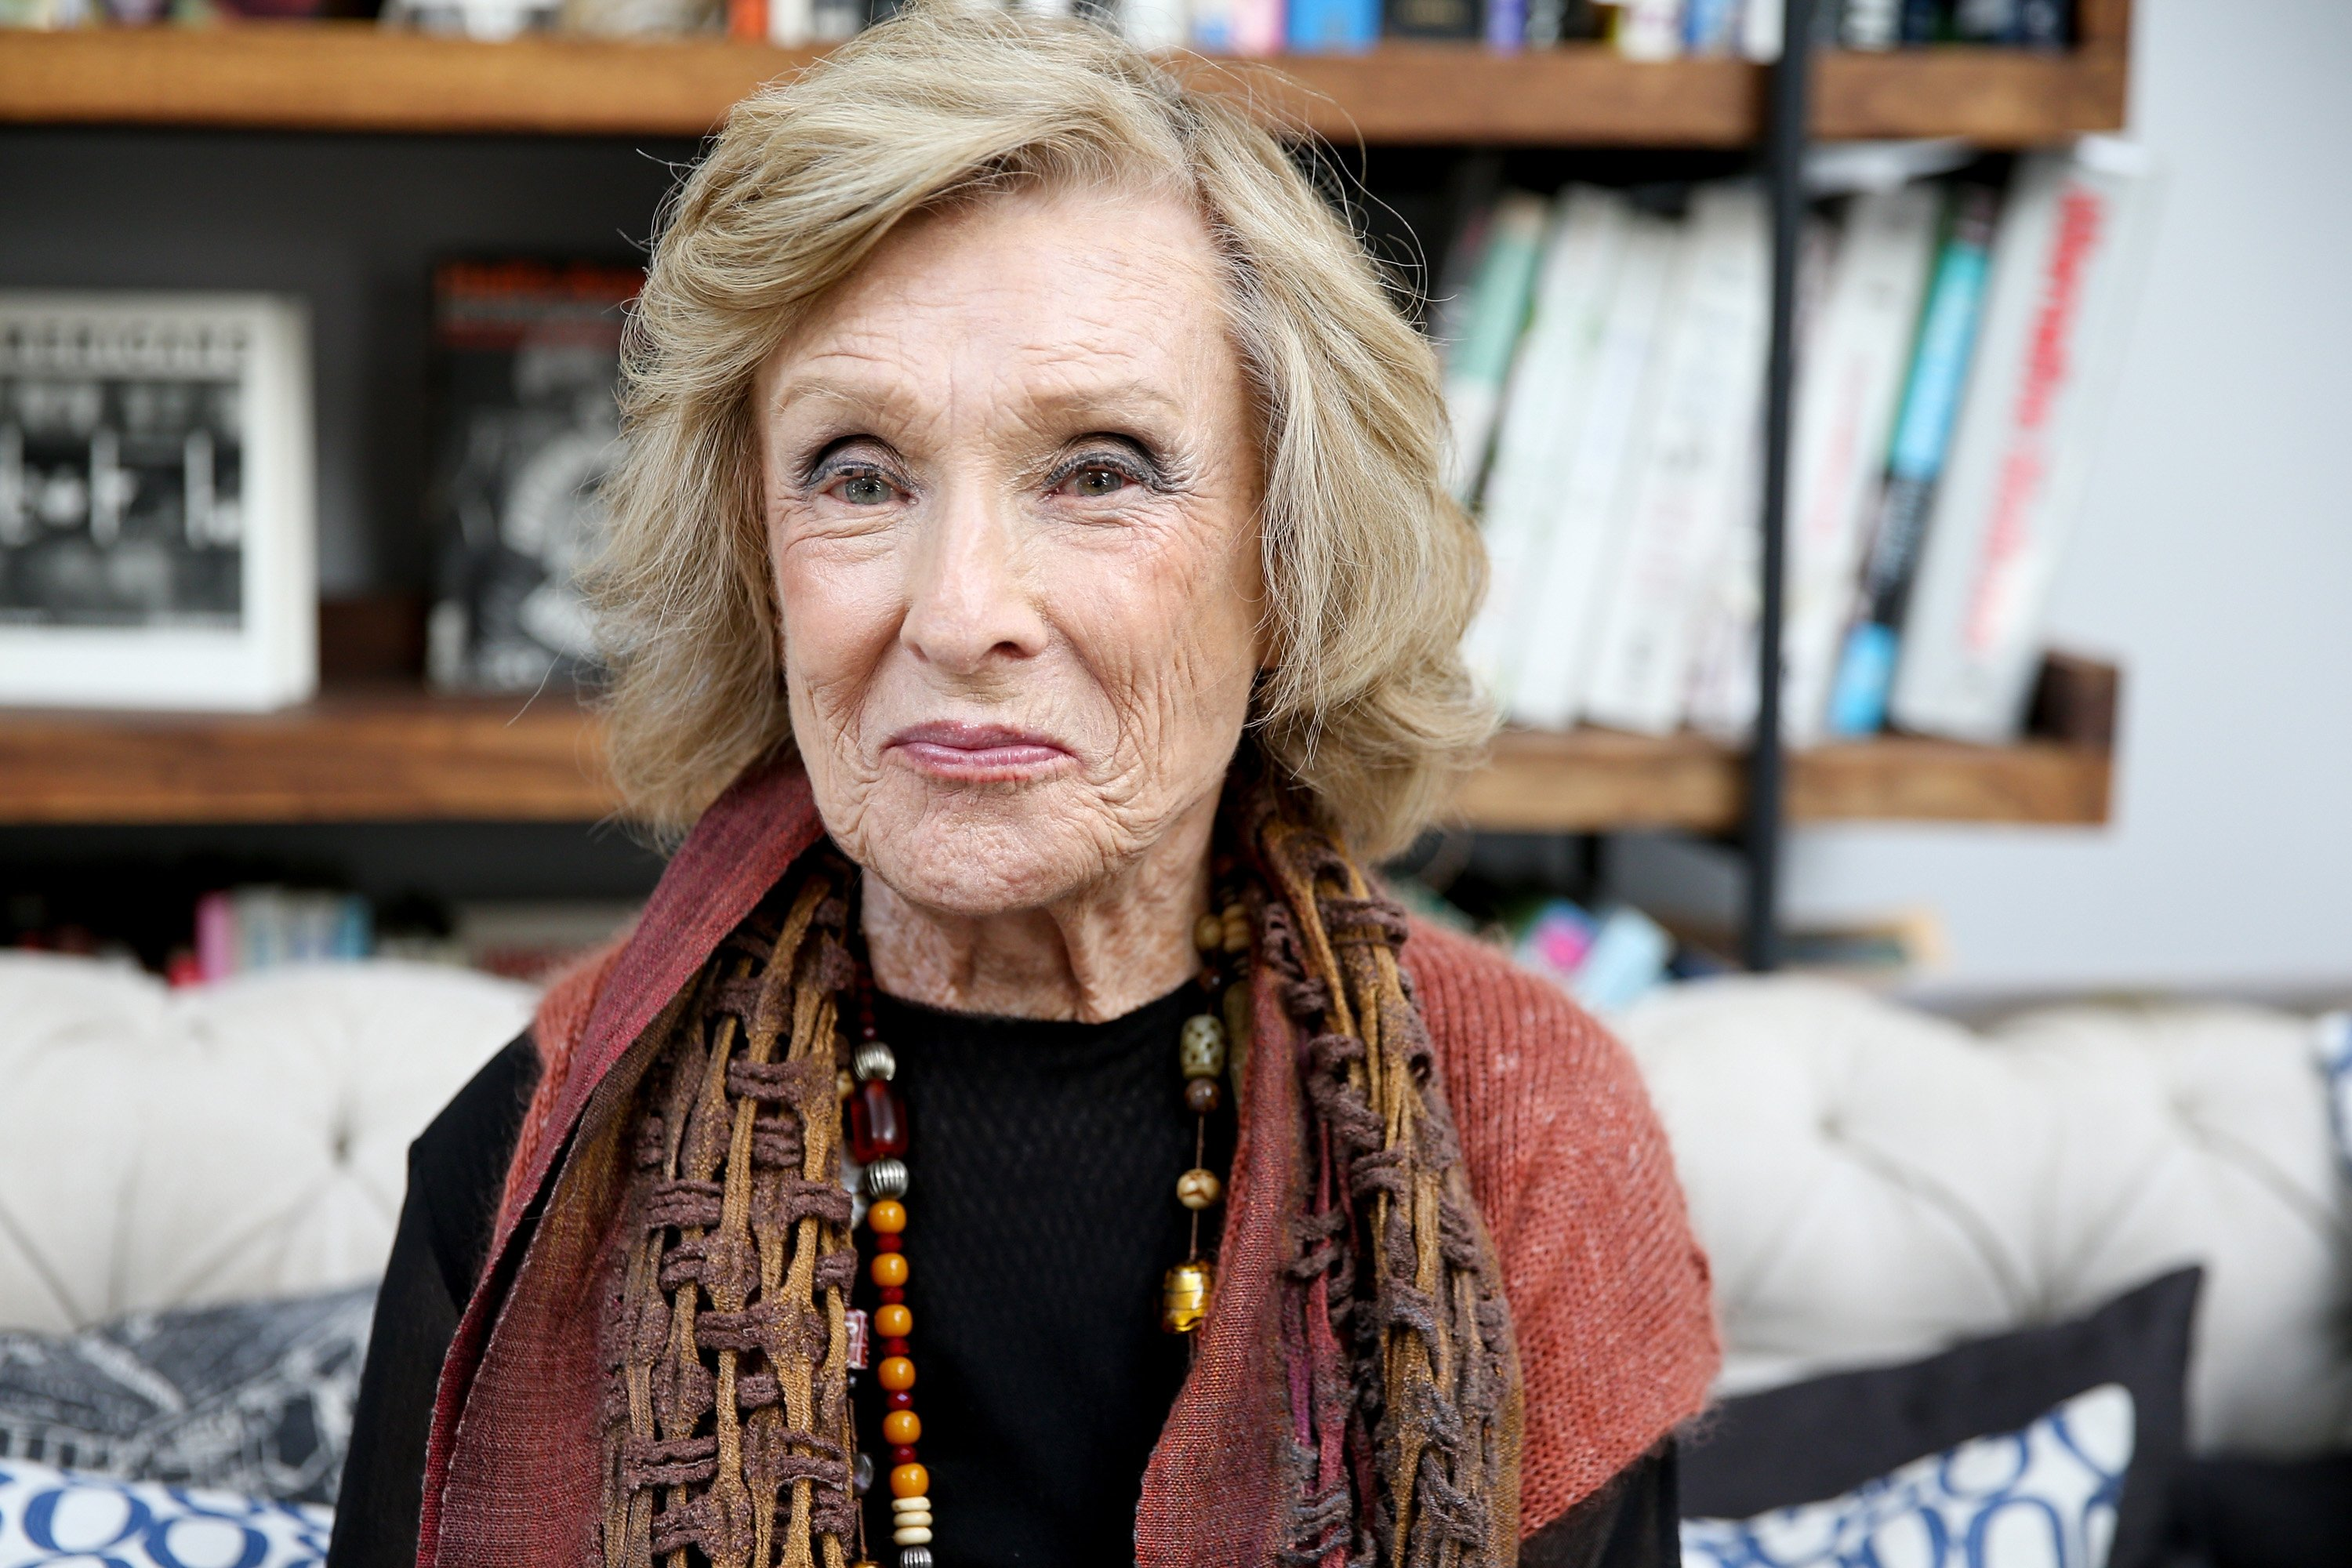 Cloris Leachman attends the PETA Fundraising Event at Private Residence on June 11, 2017 in Malibu, California | Photo: Getty Images